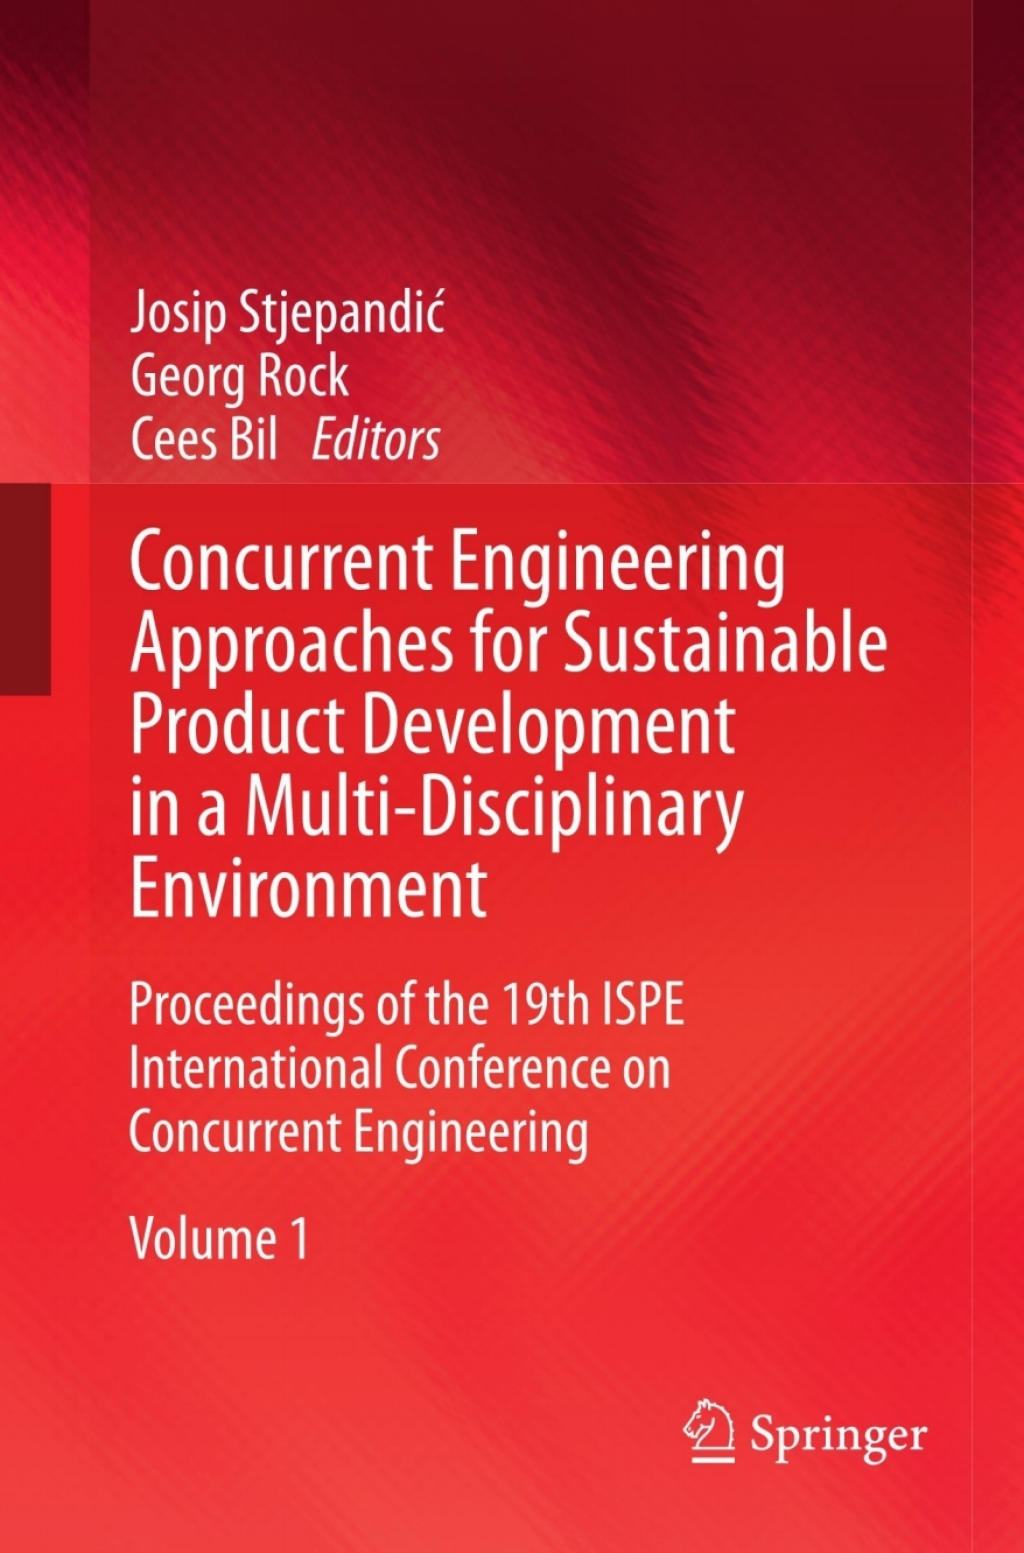 Concurrent Engineering Approaches for Sustainable Product Development in a Multi-Disciplinary Environment: Proceedings of the 19th ISPE Inter (eBook)